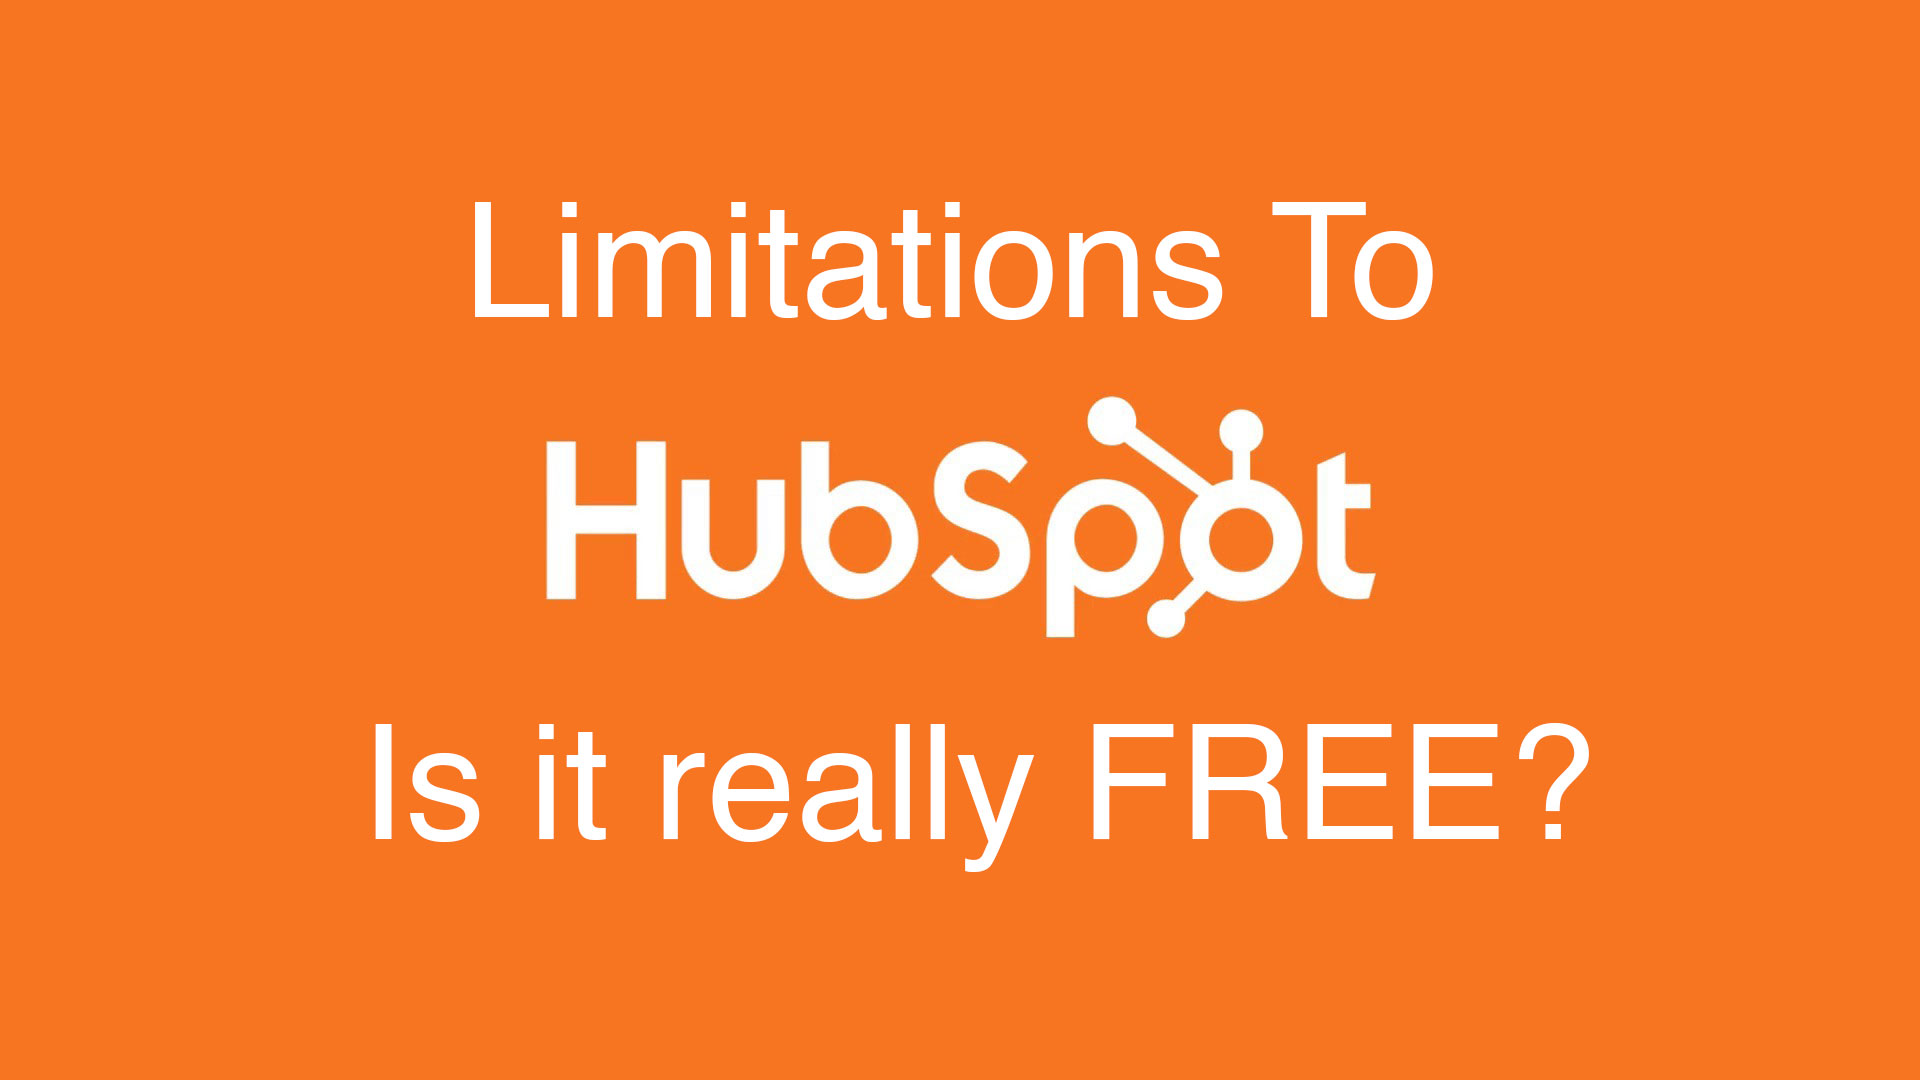 Limitations To HubSpot Is it really Free?